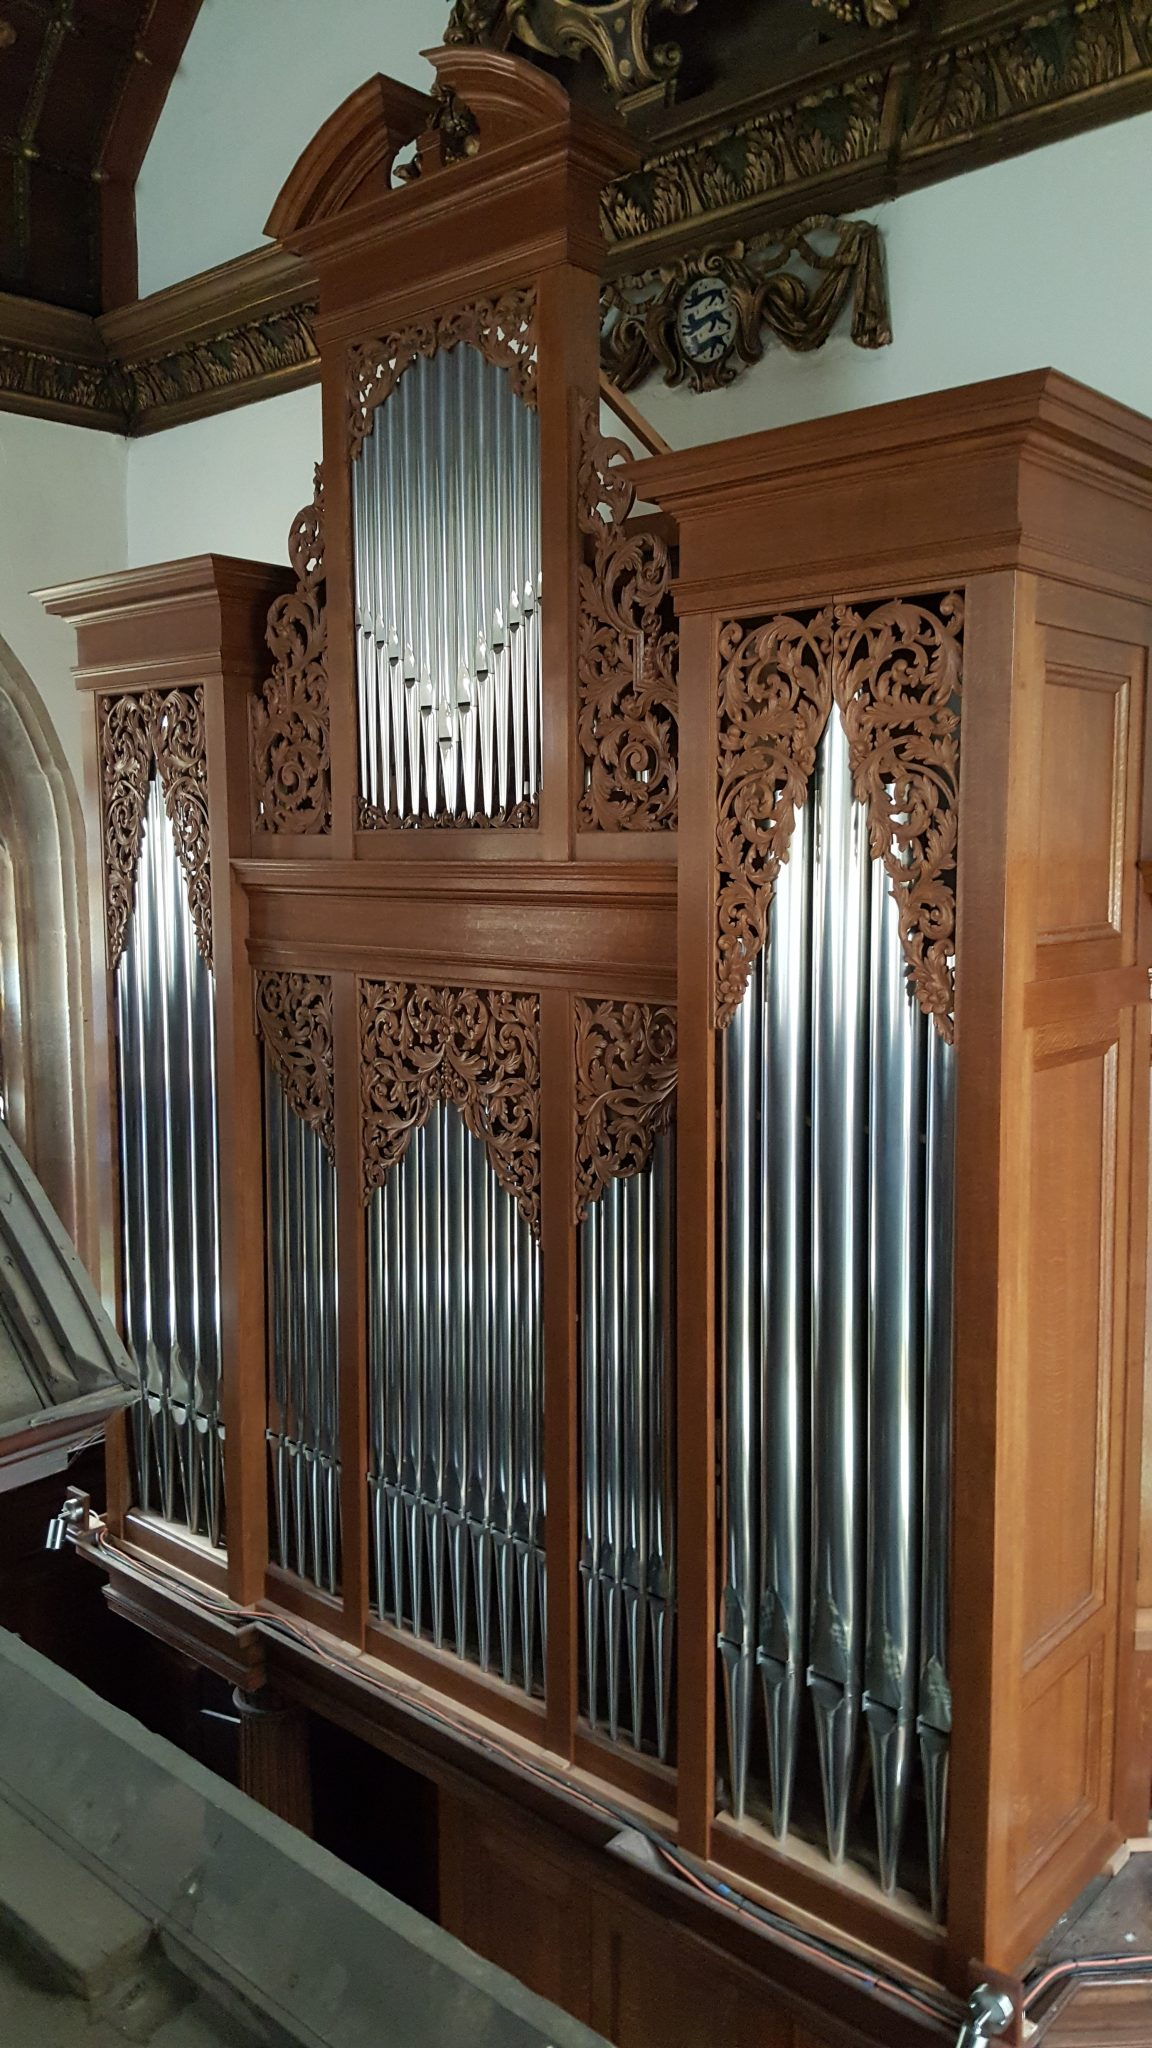 pipe organ case in oak